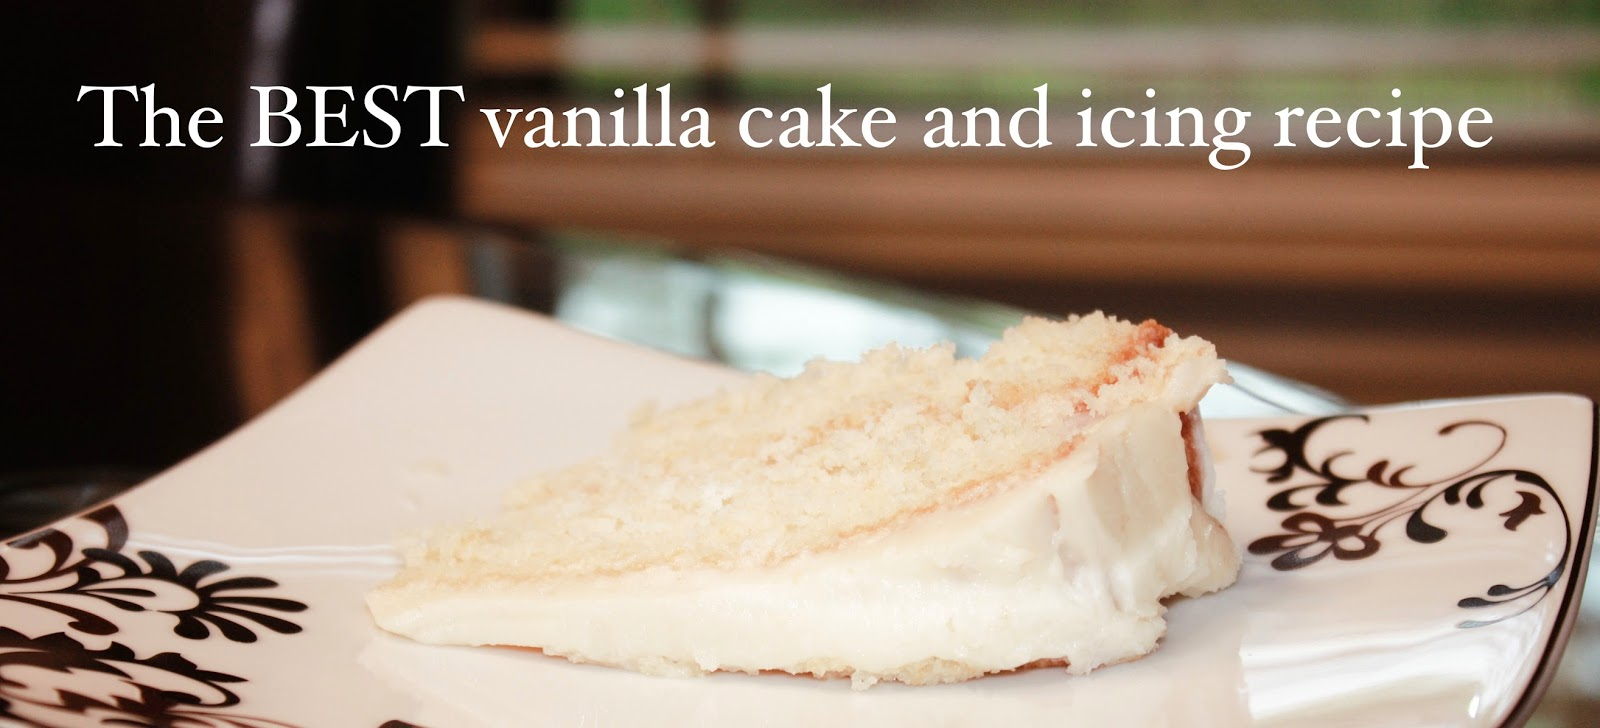 Good Cake Icing Recipes: The Best Vanilla Cake And Icing Recipe